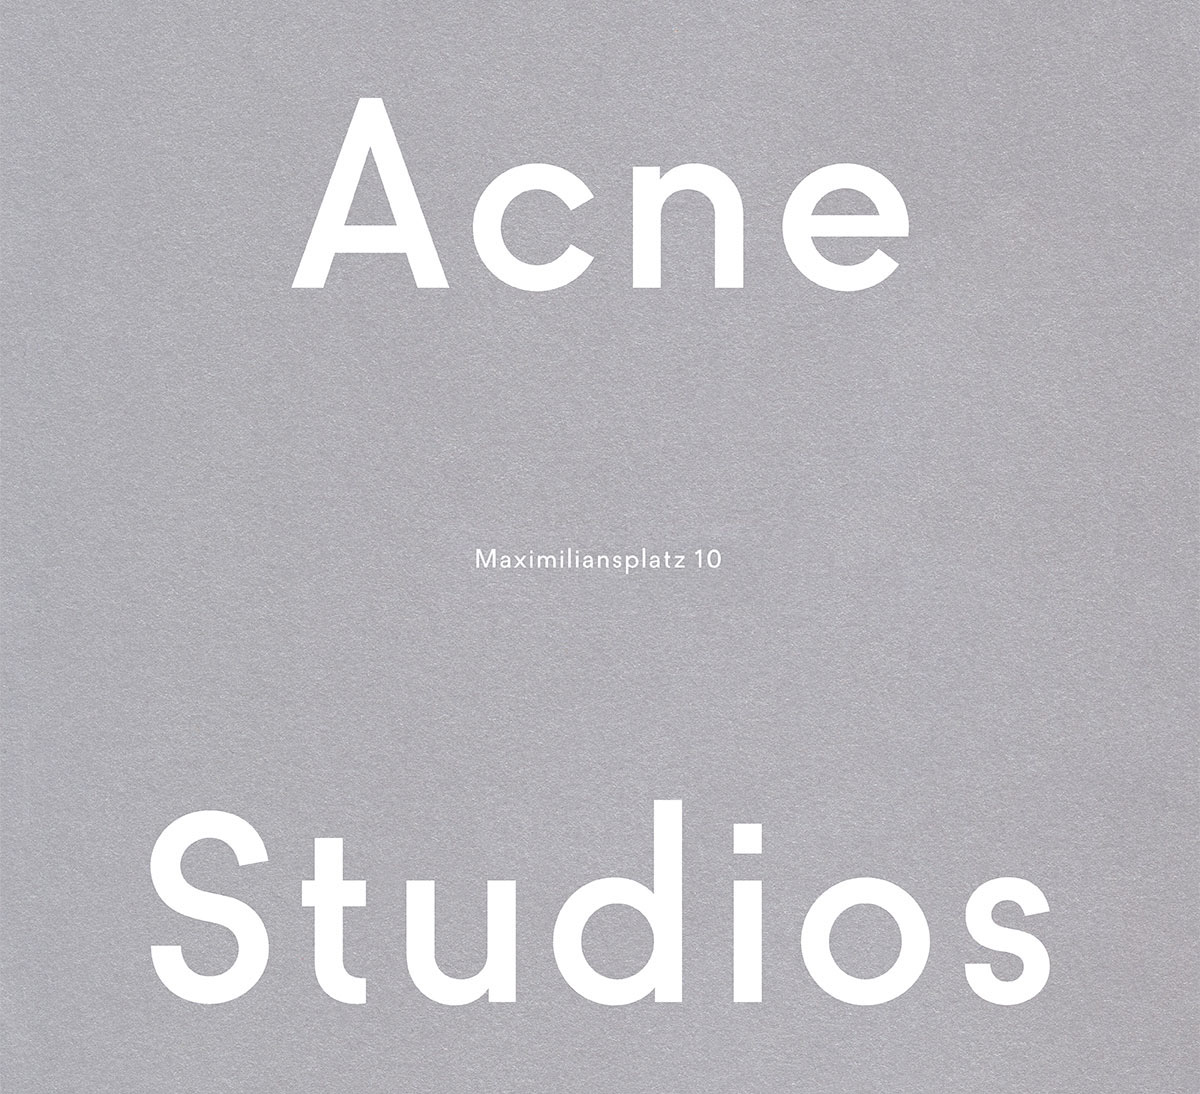 Acne Studios Maximiliansplatz store launch